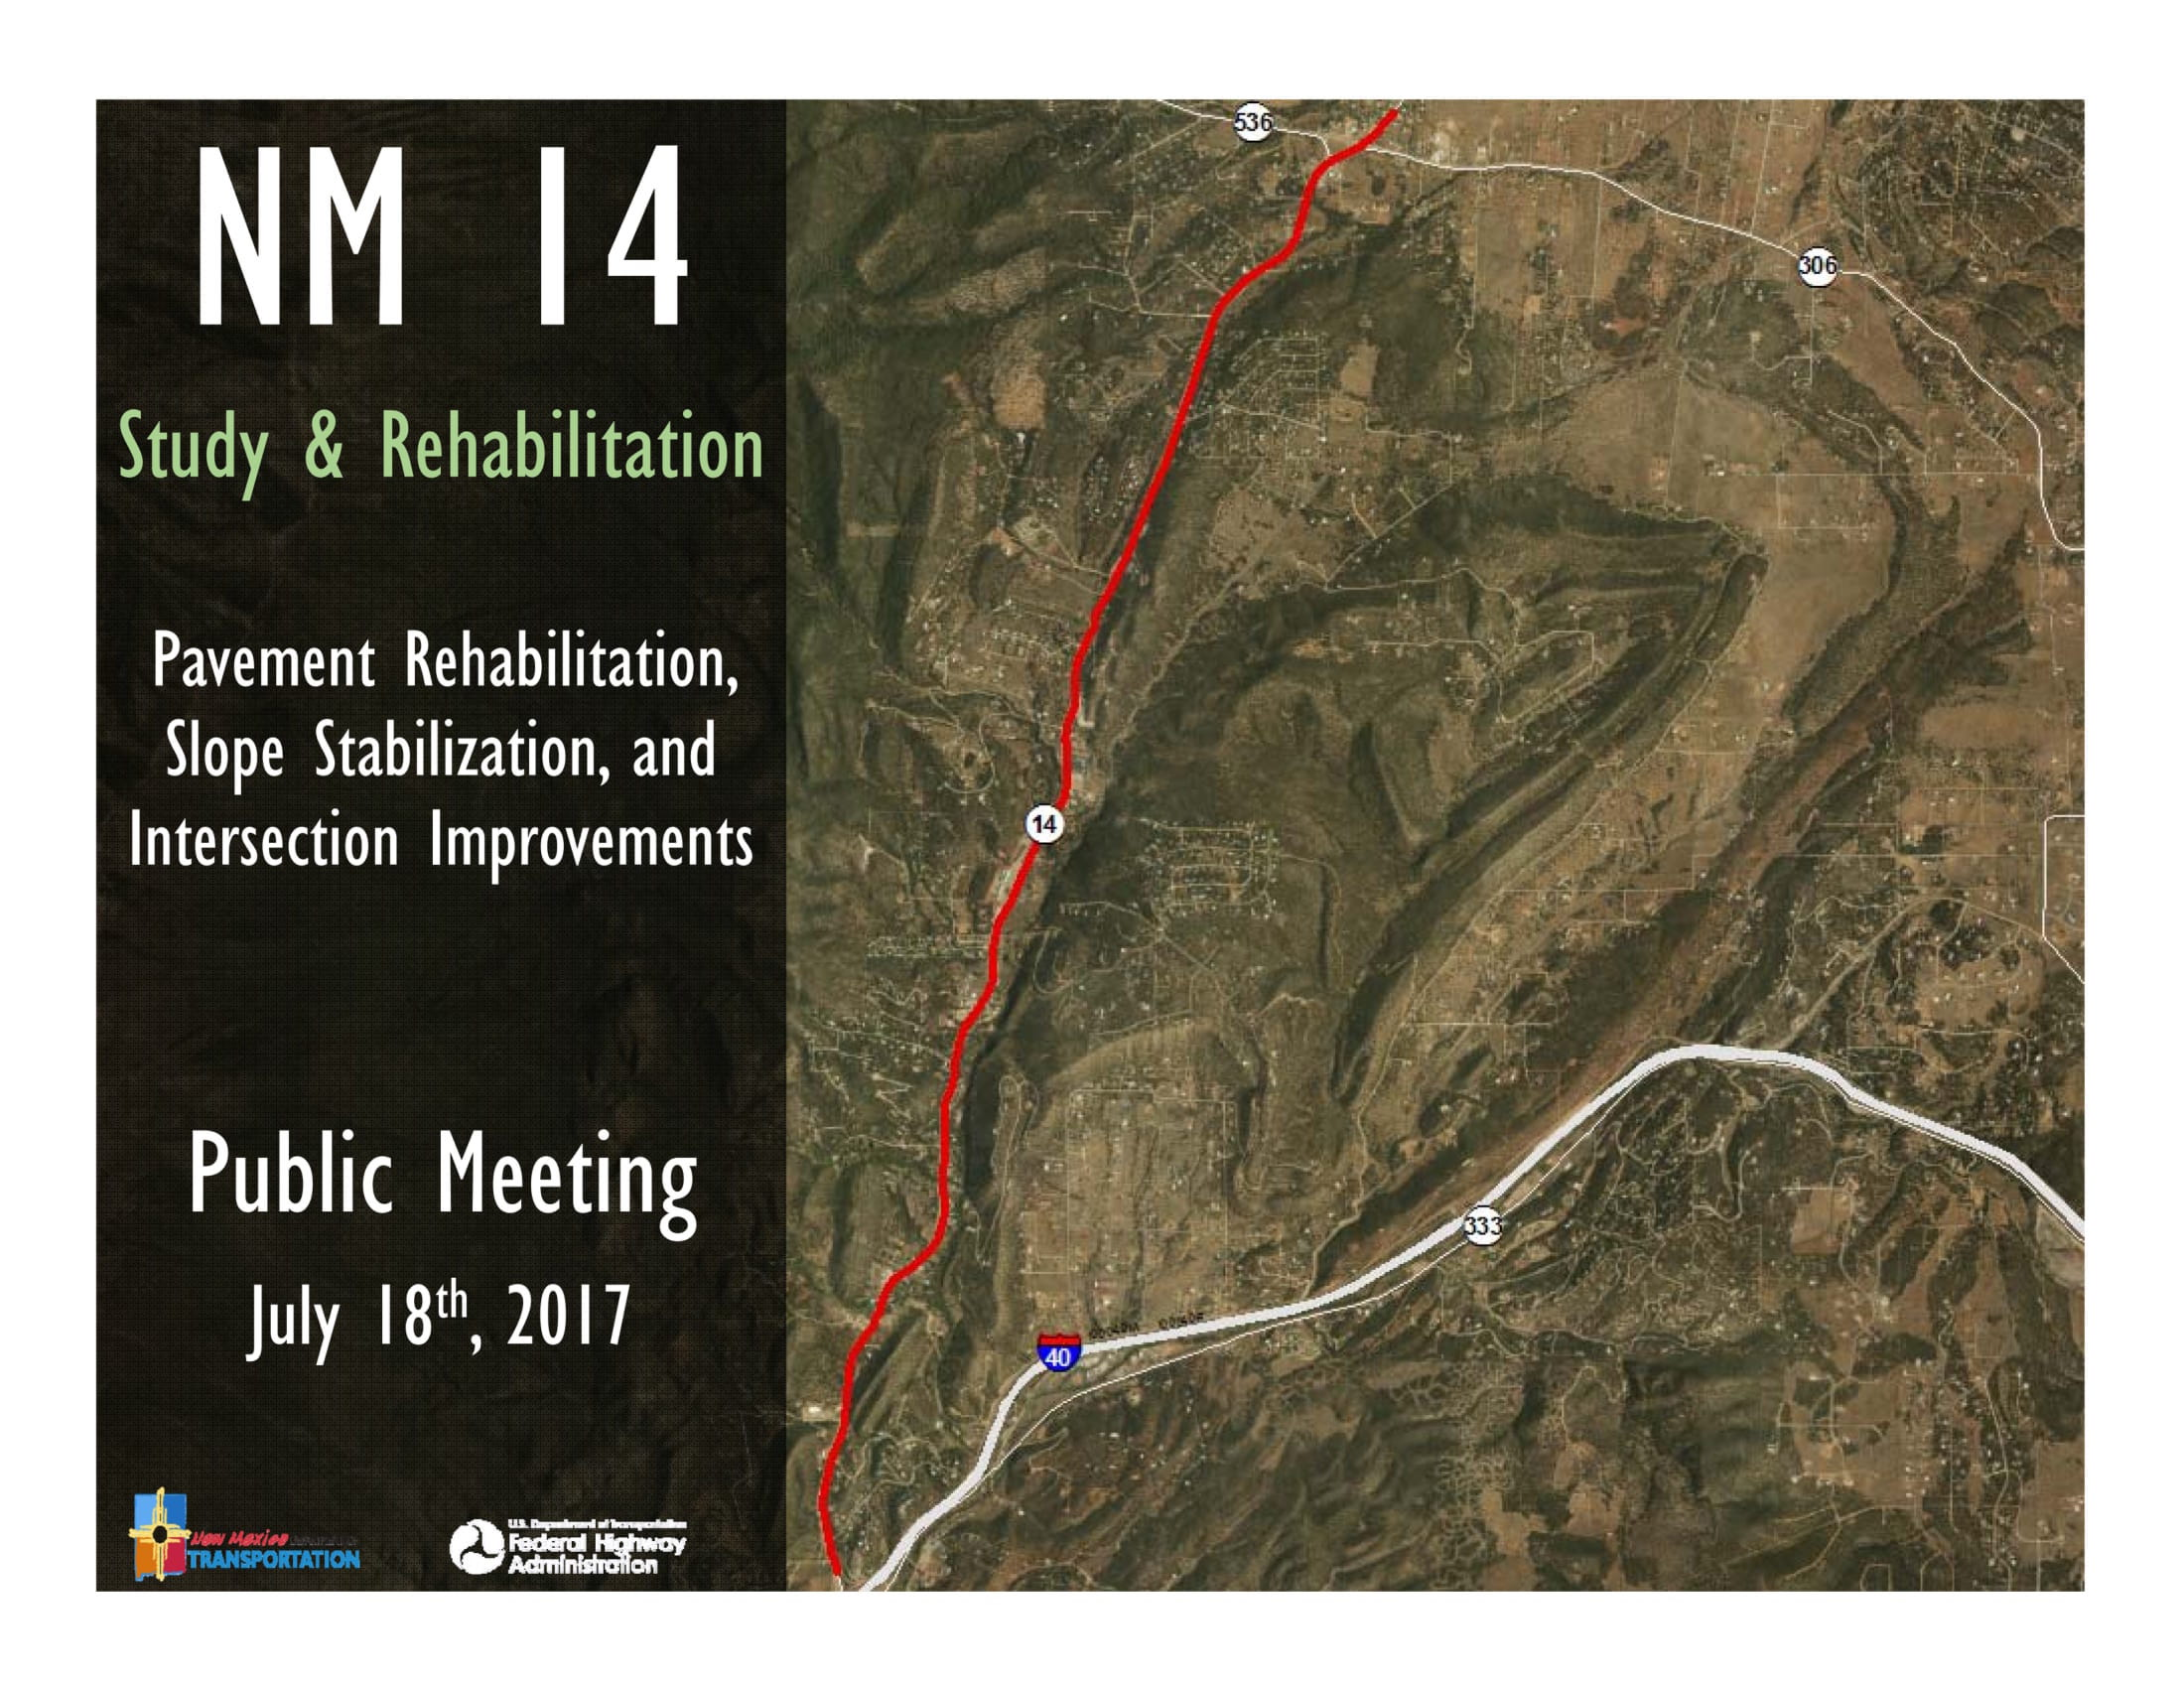 The New Mexico Department of Transportation is planning several improvements on NM 14 over the next several years.